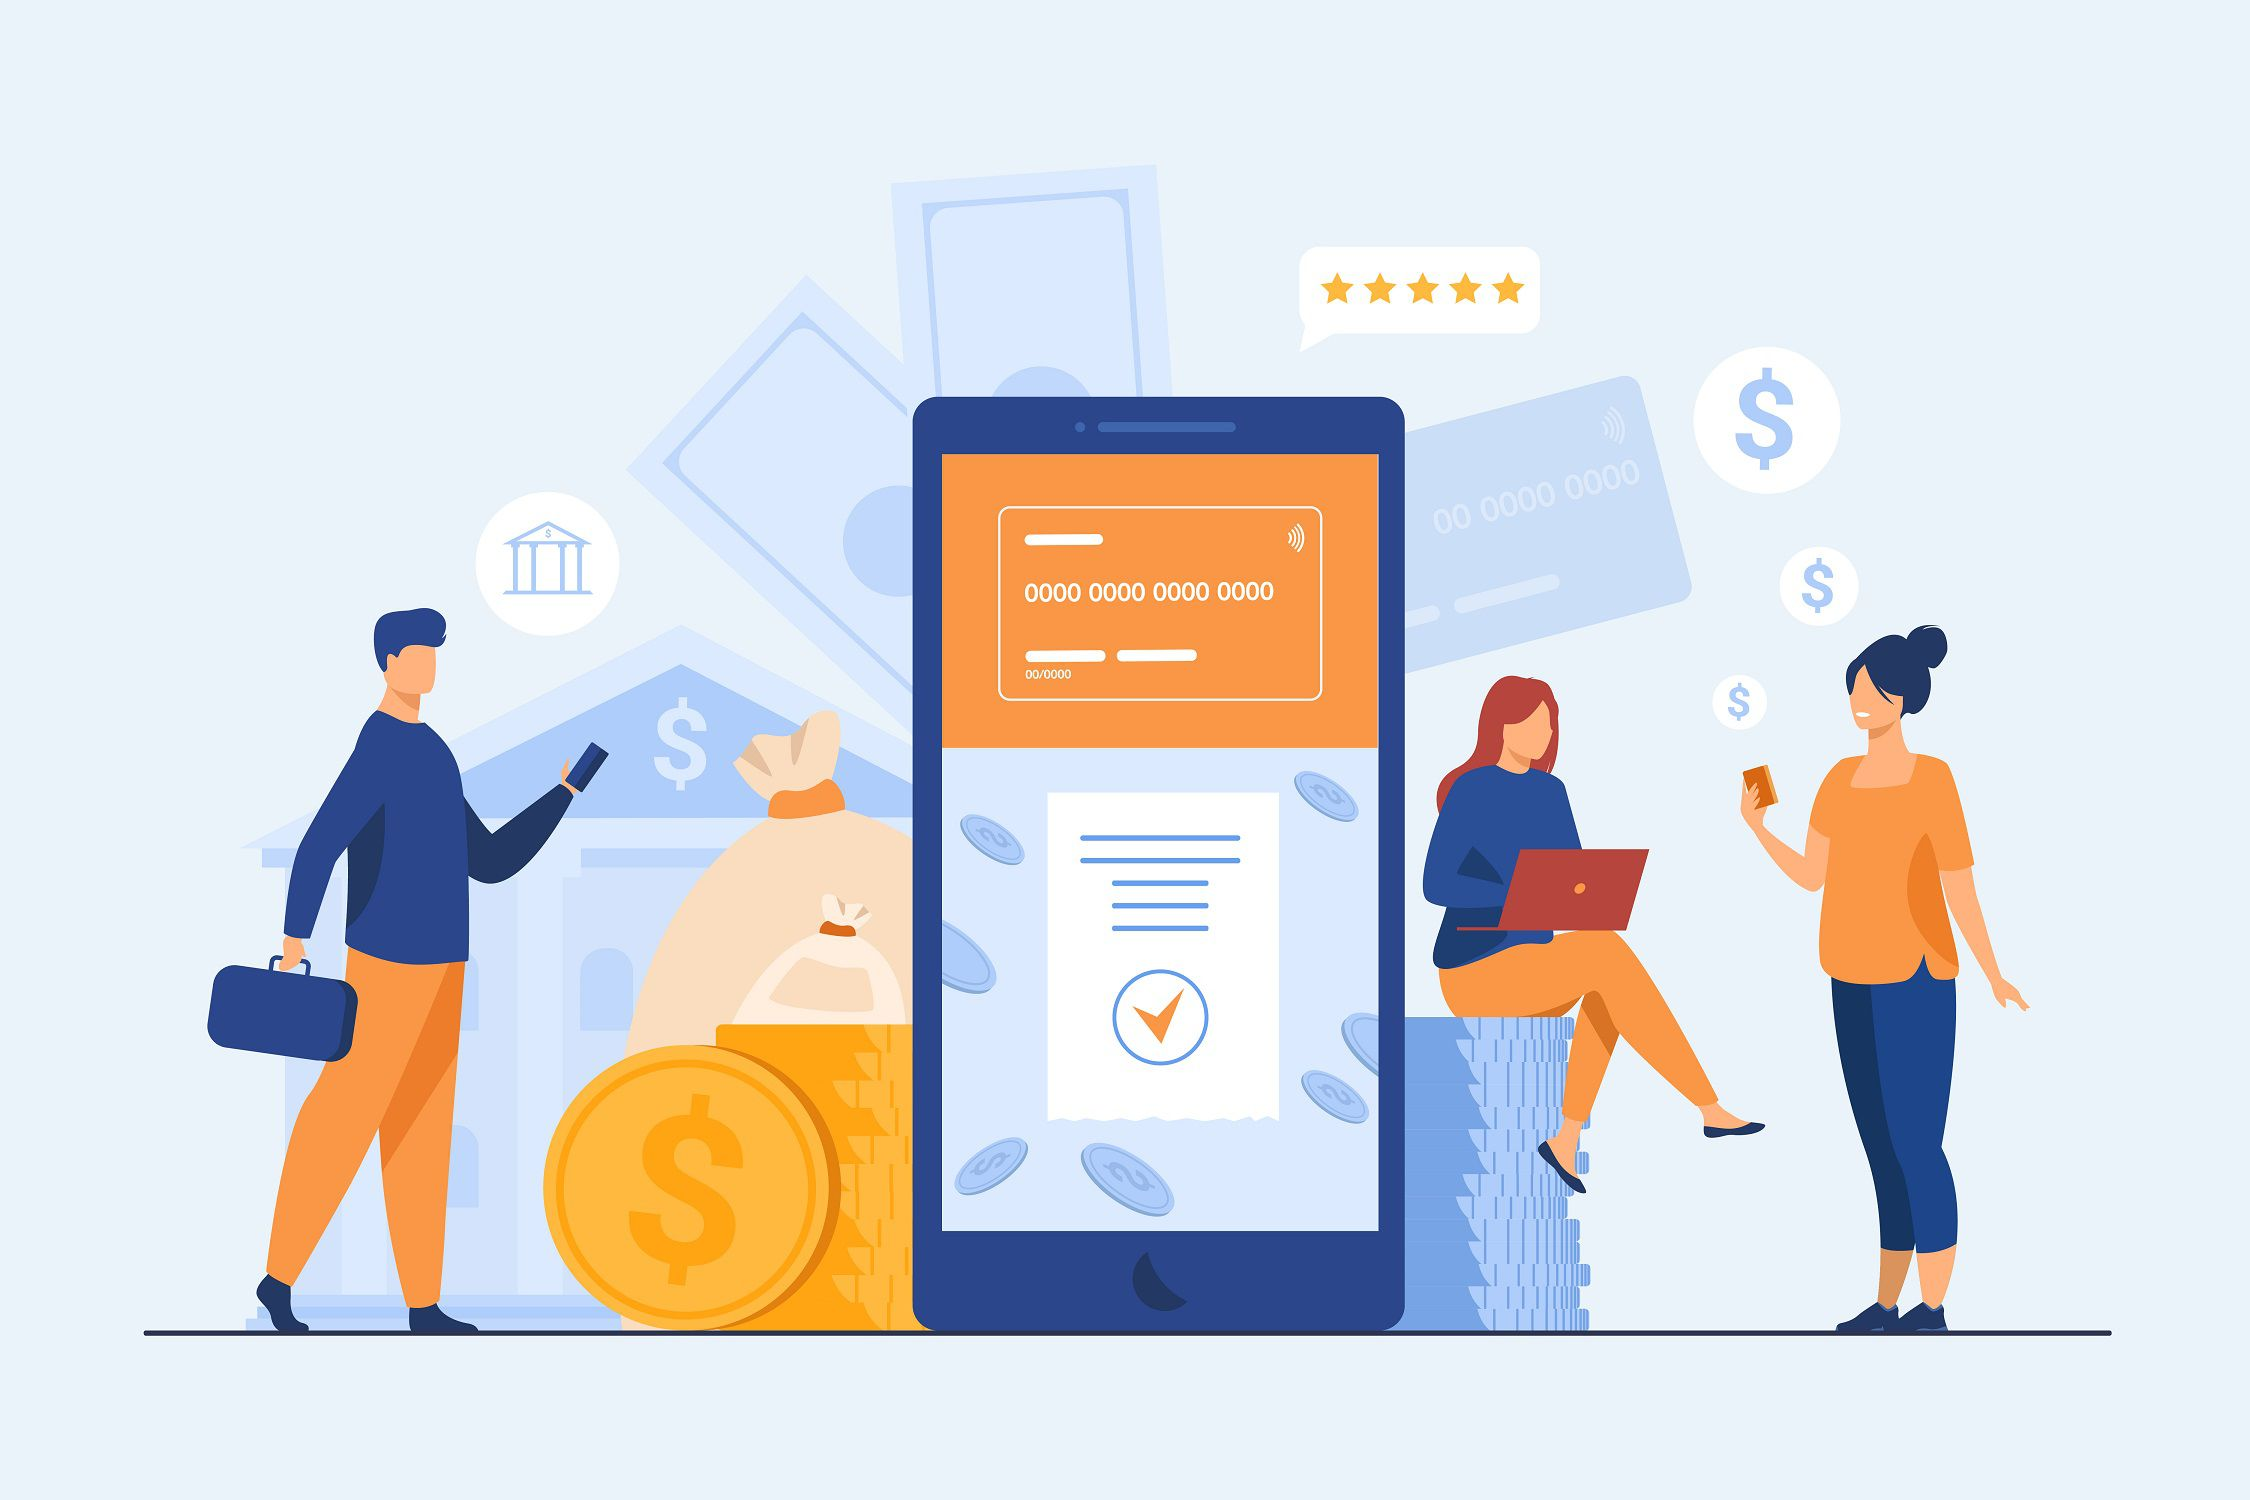 People with smartphones using mobile banking app. Man and woman with digital devices making online payment. Vector illustration for money, fintech, transaction concept